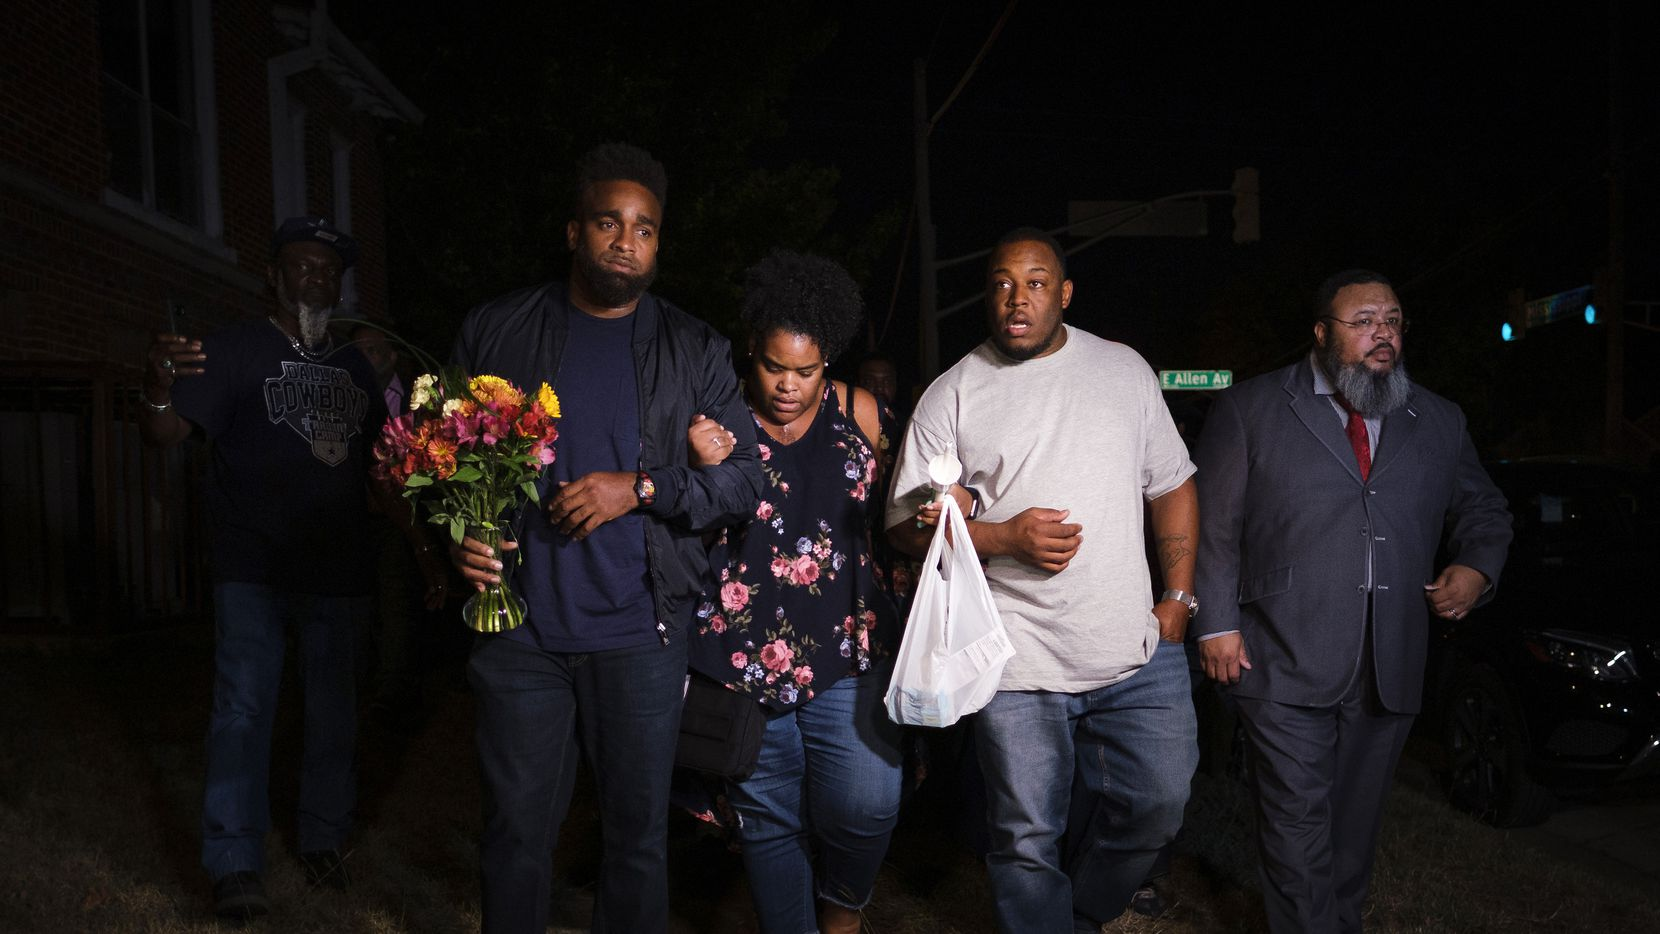 Members of the victim's family depart a community vigil for Atatiana Jefferson on Sunday, Oct. 13, 2019, in Fort Worth, Texas.  Jefferson, a 28-year-old black woman, was shot in her home by a white Fort Worth police officer during a welfare check.